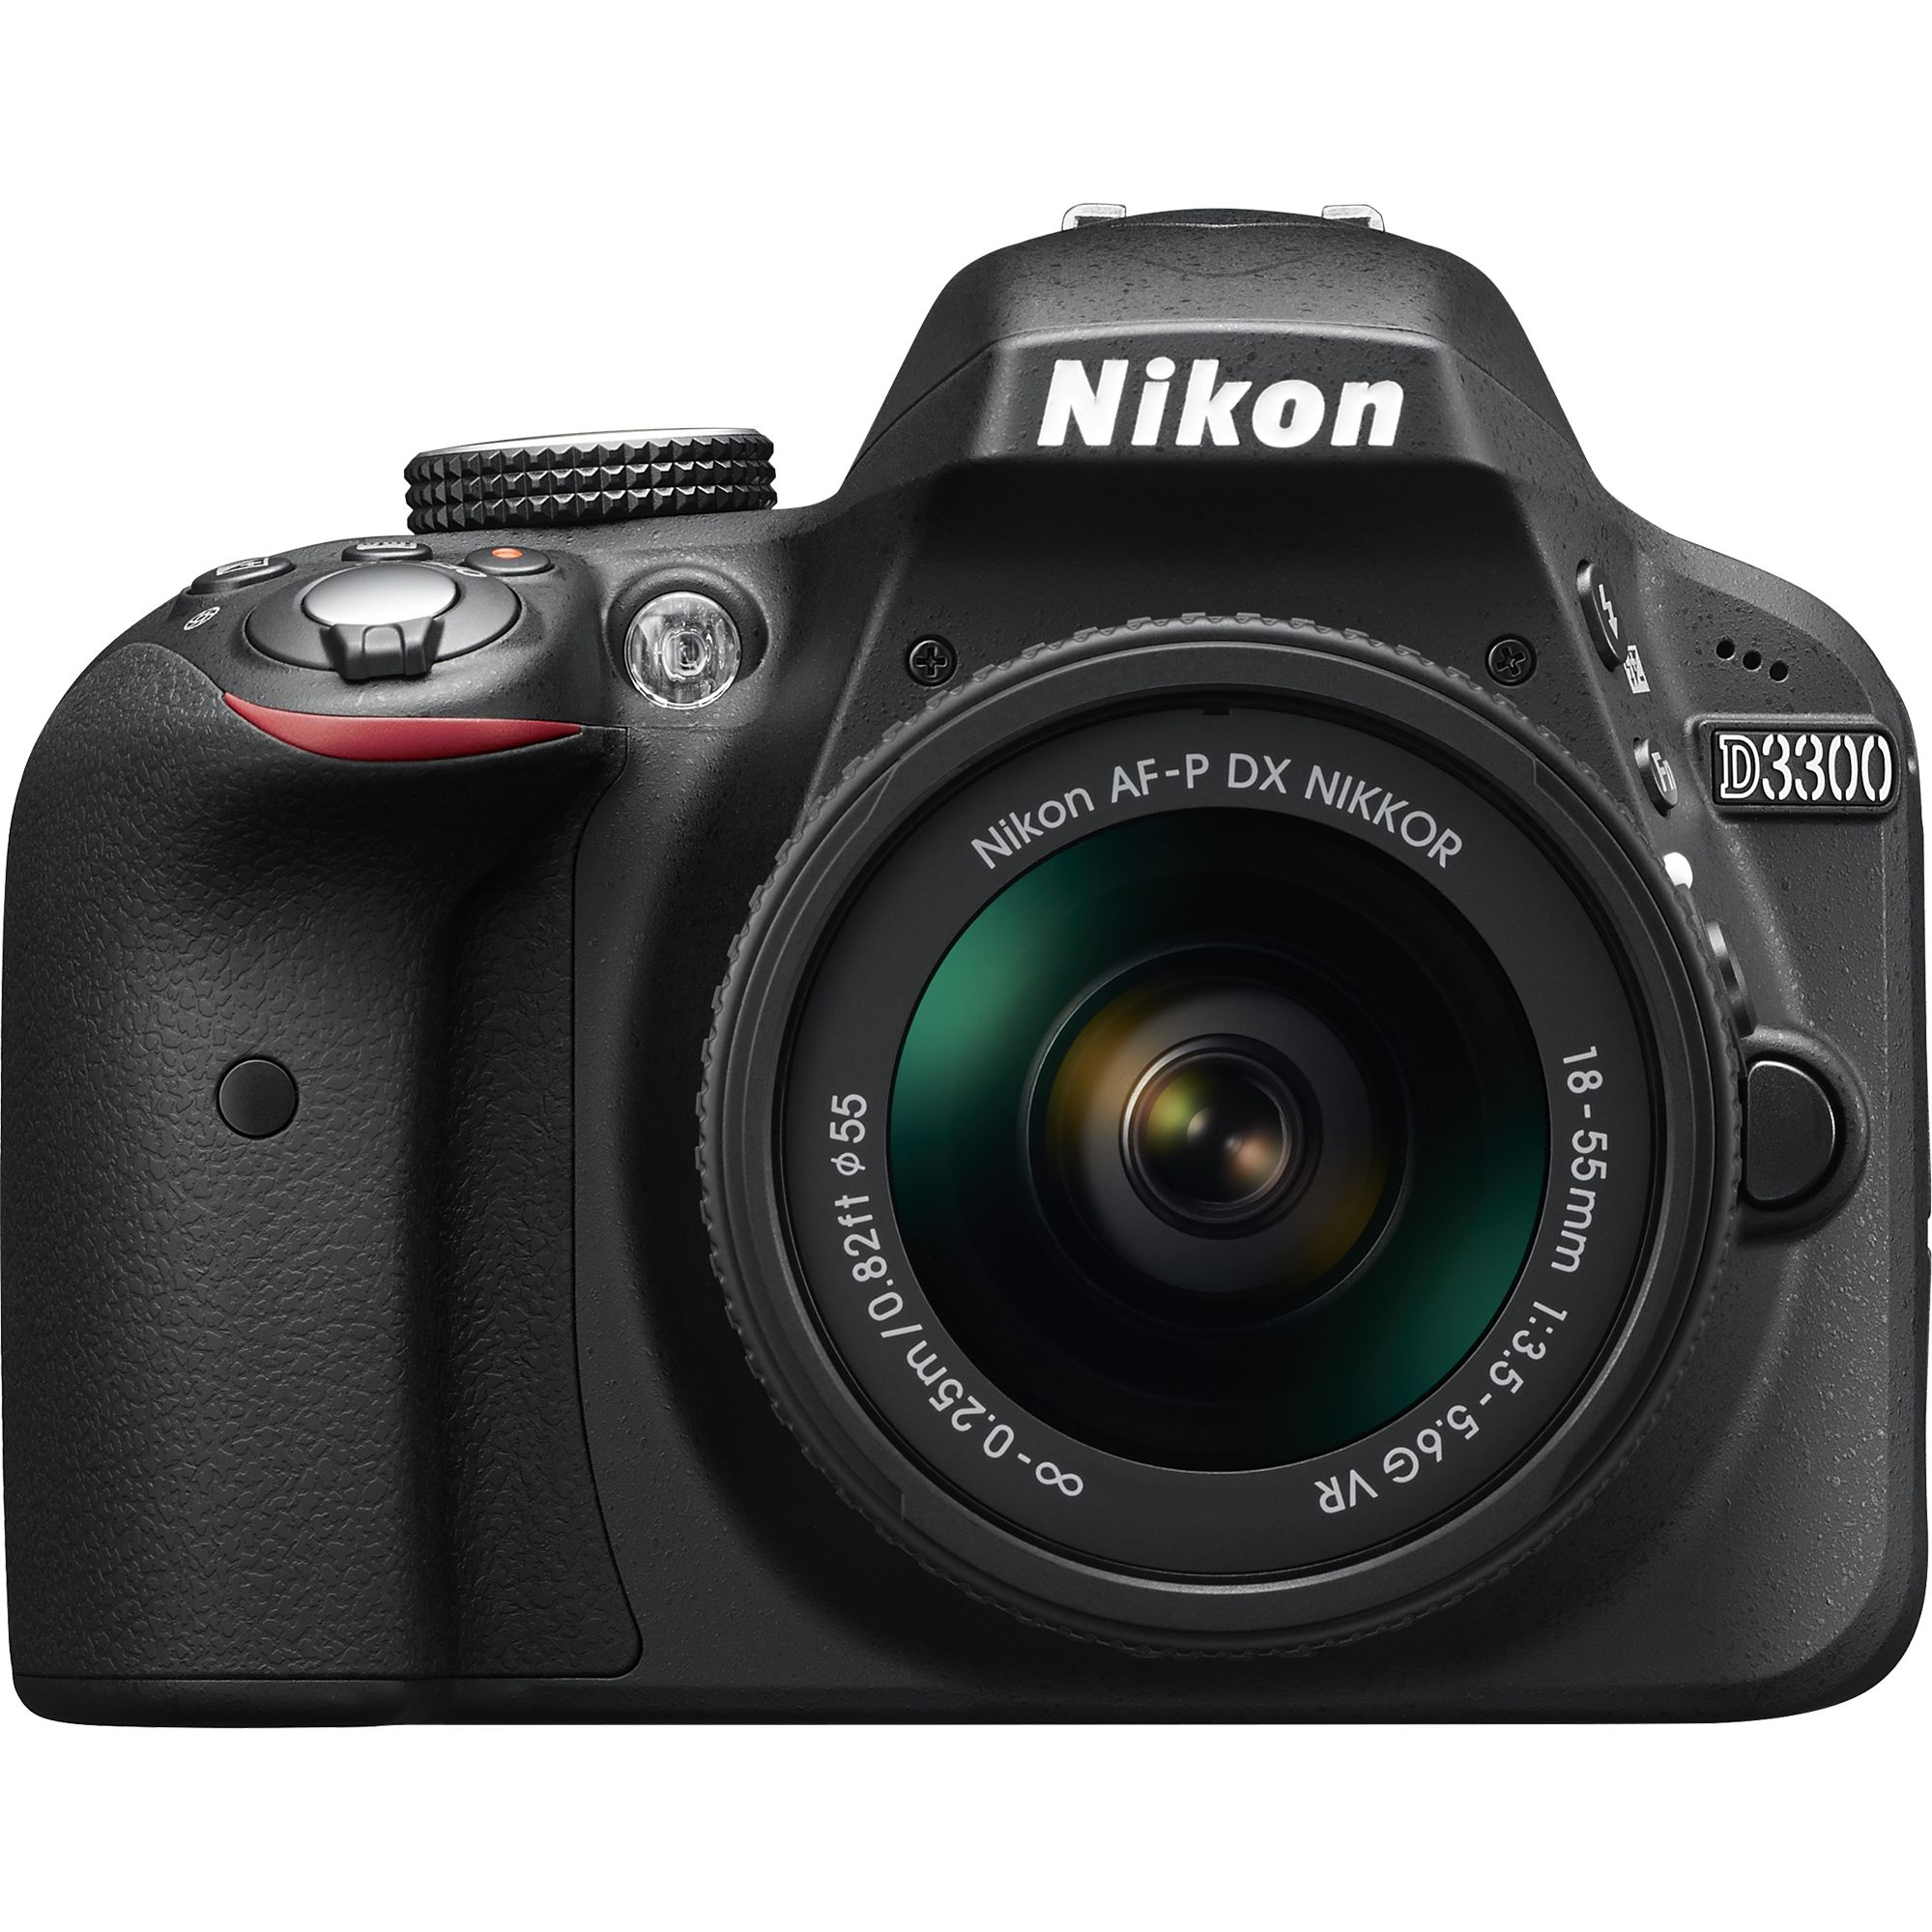 Aparat foto DSLR Nikon D3300, Black, 24.2 MP